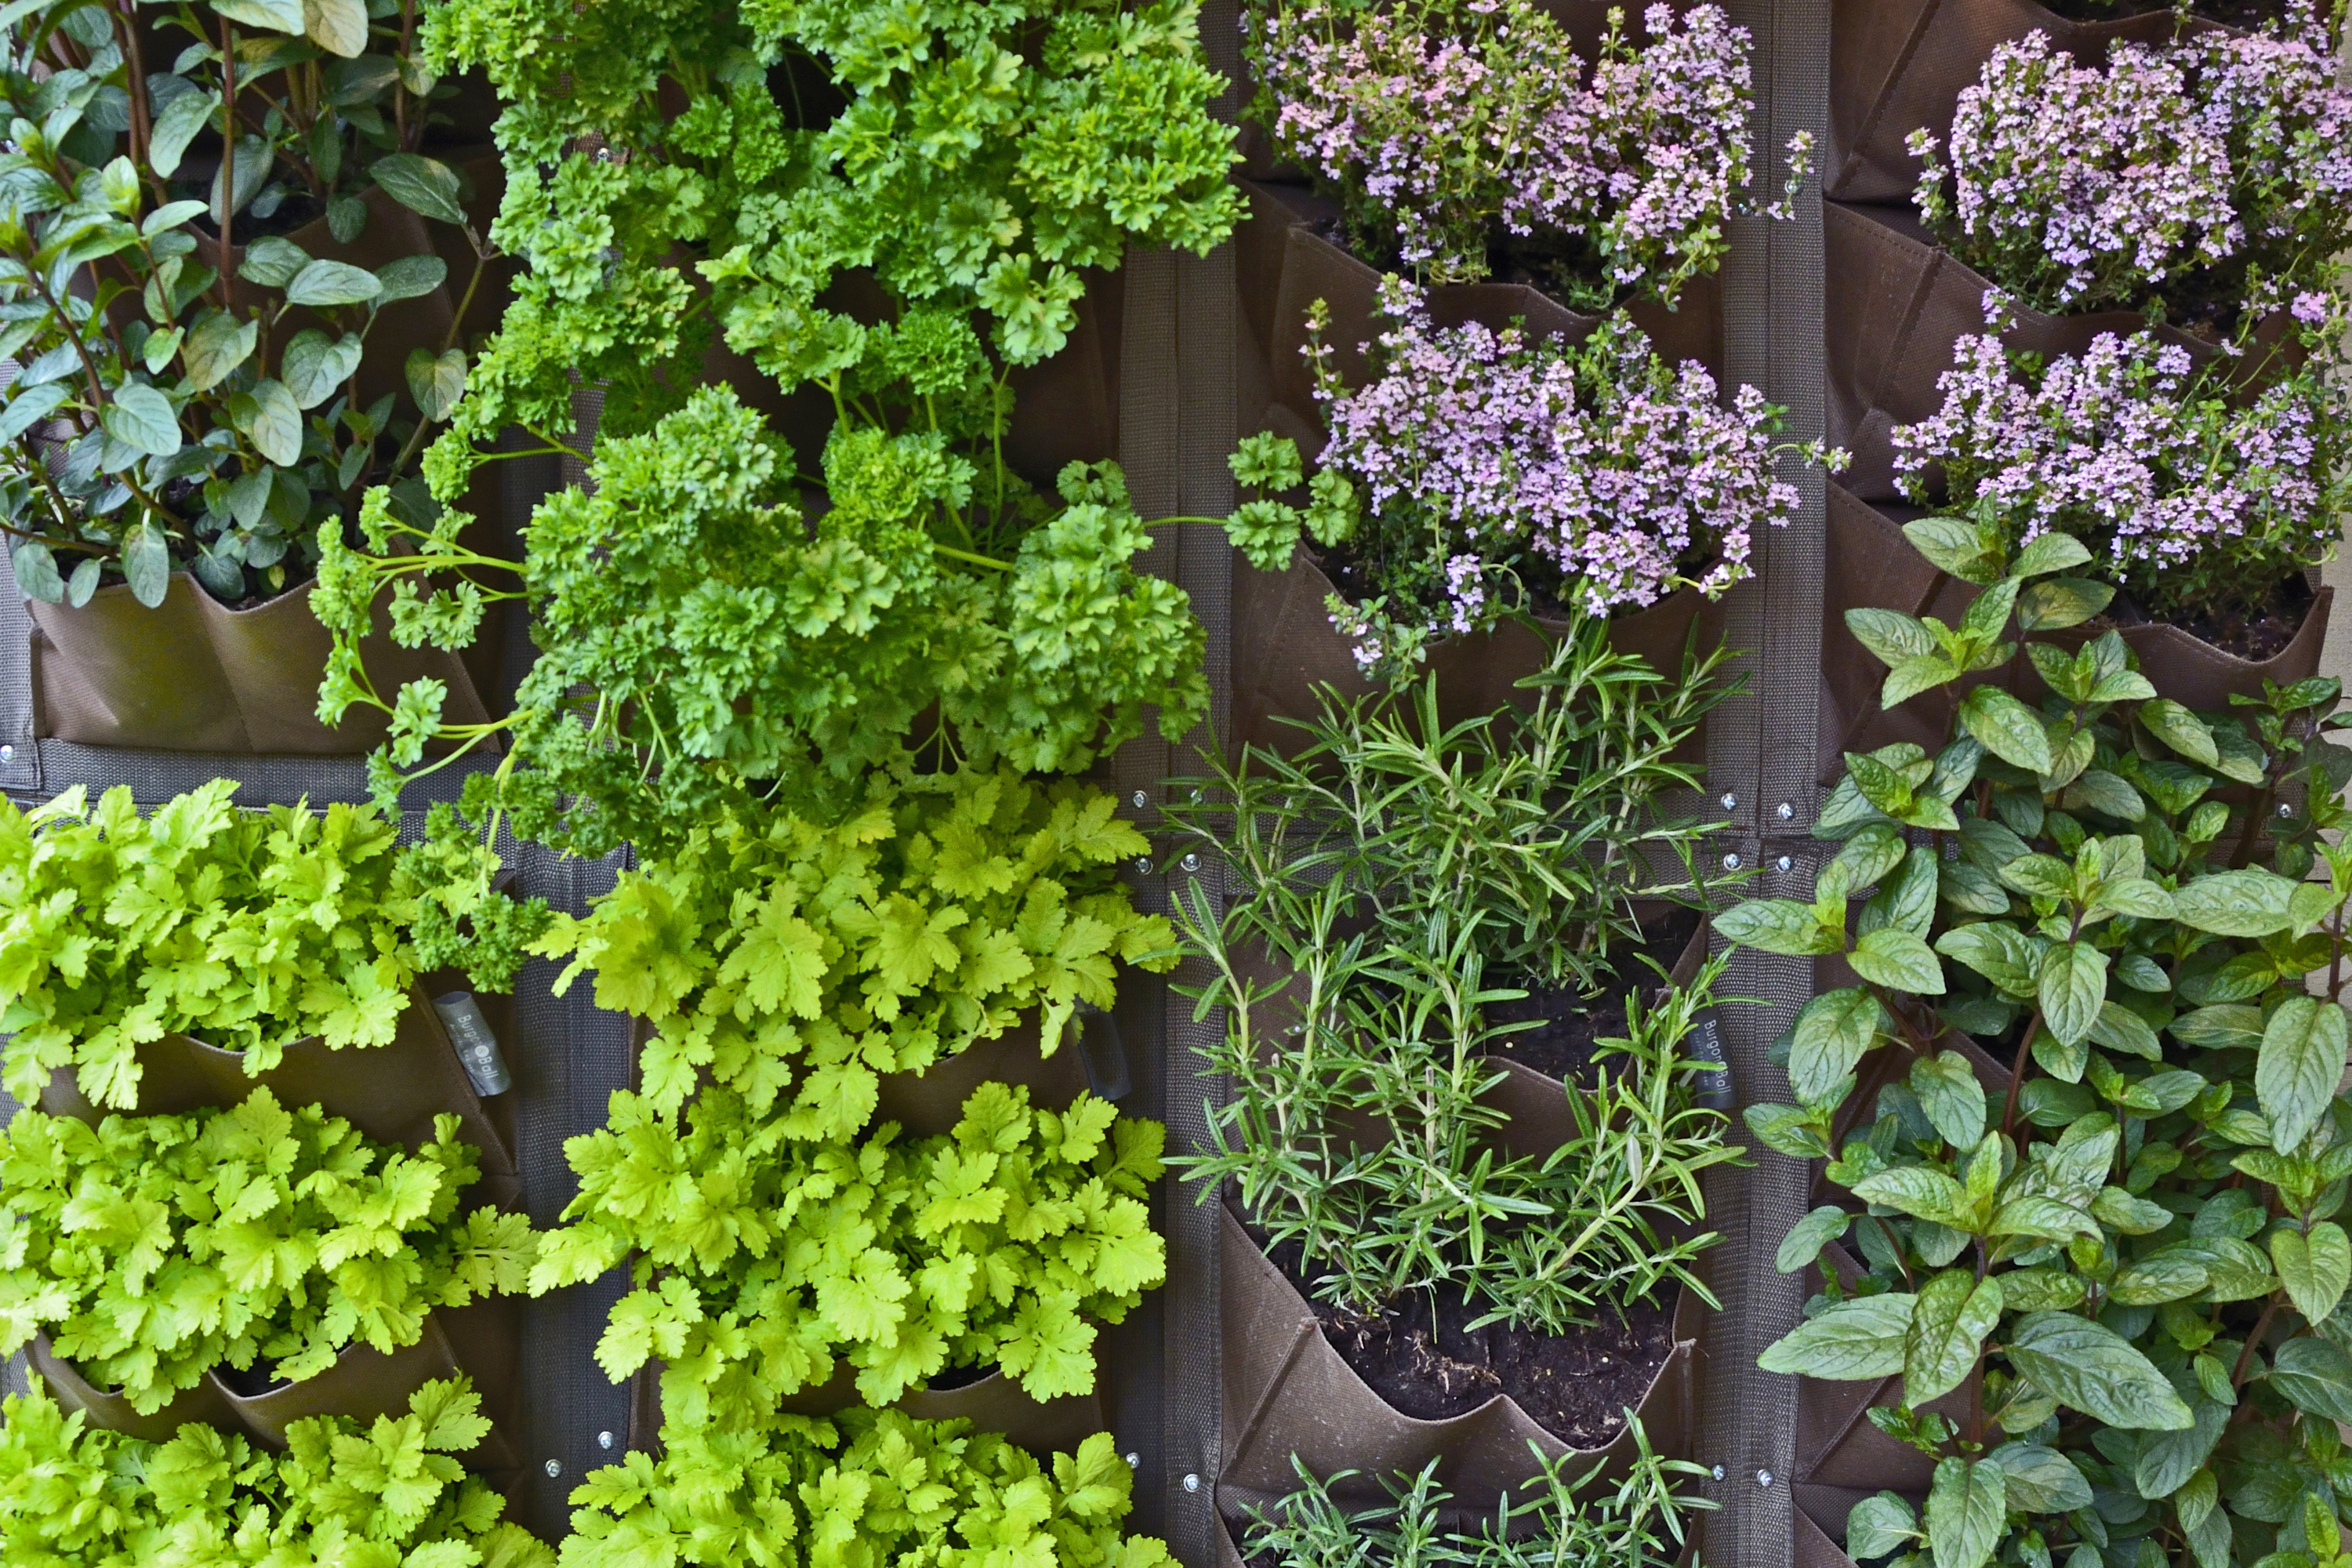 Are you familiar with companion gardening? It allows your plants to grow together as best as possible. Here's everything you need to know about companion planting herbs.